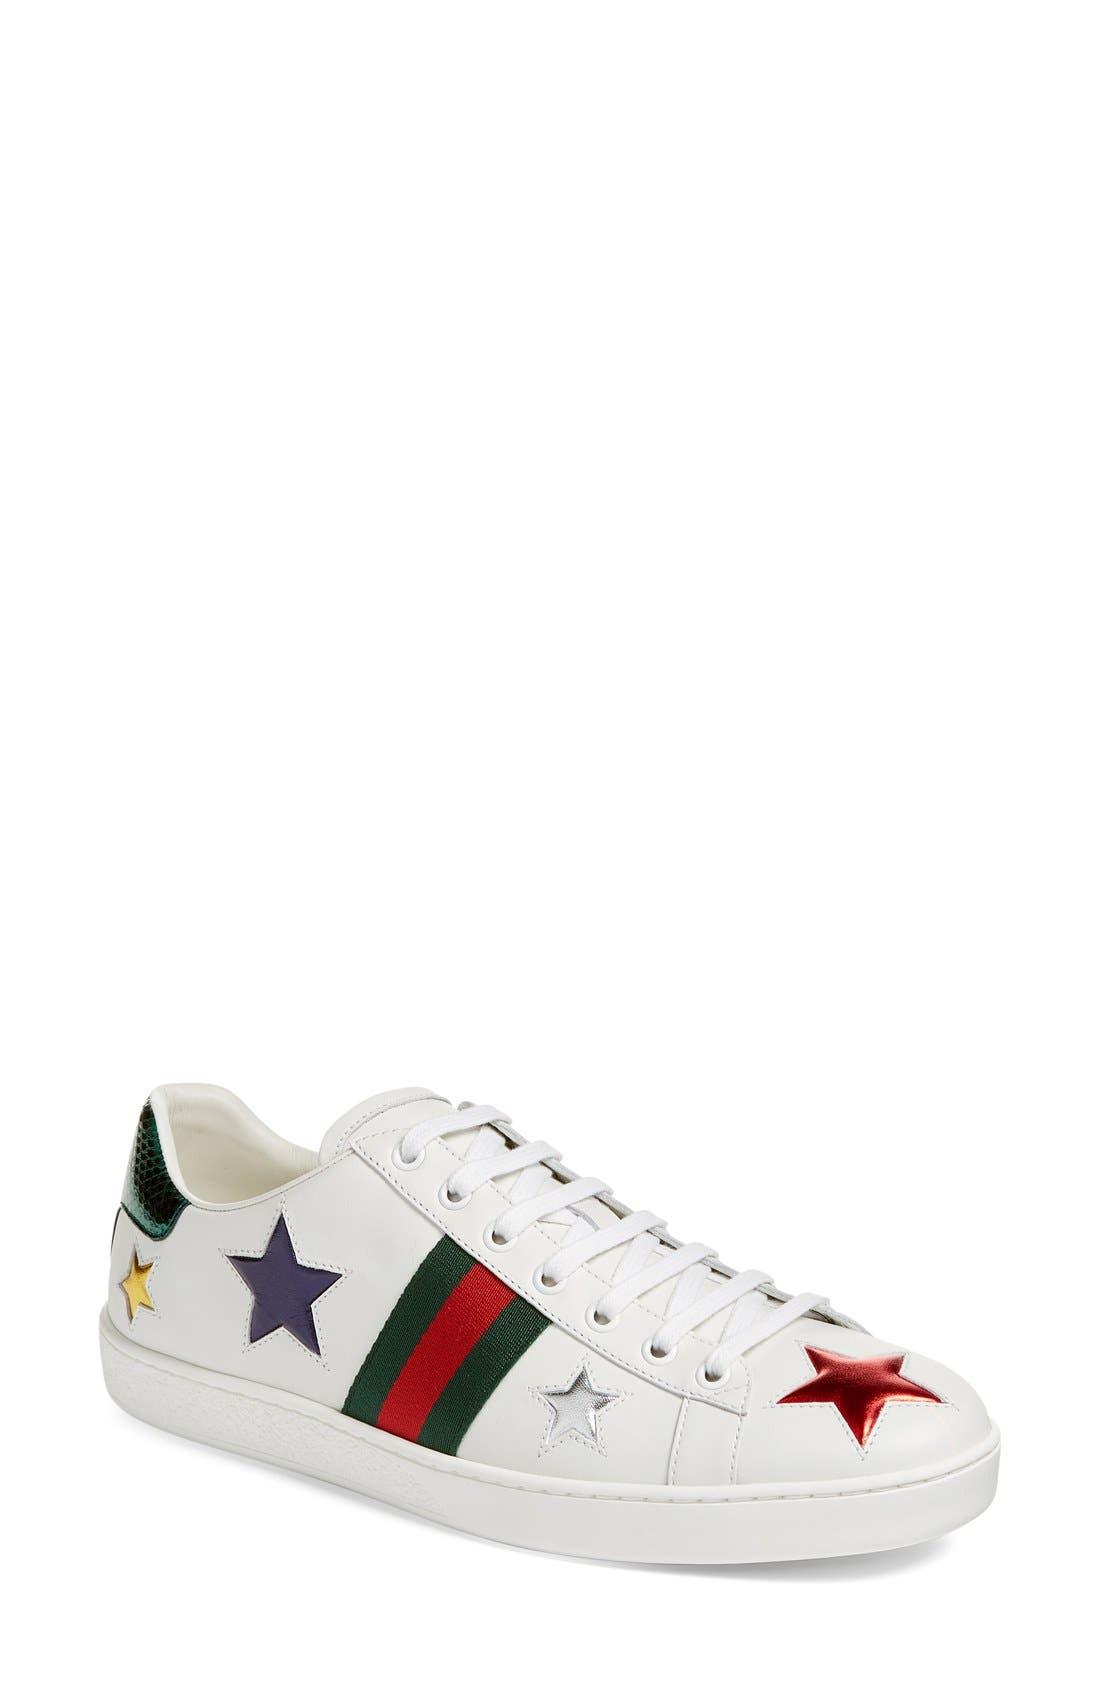 New Ace Star Sneaker,                         Main,                         color, White Multi